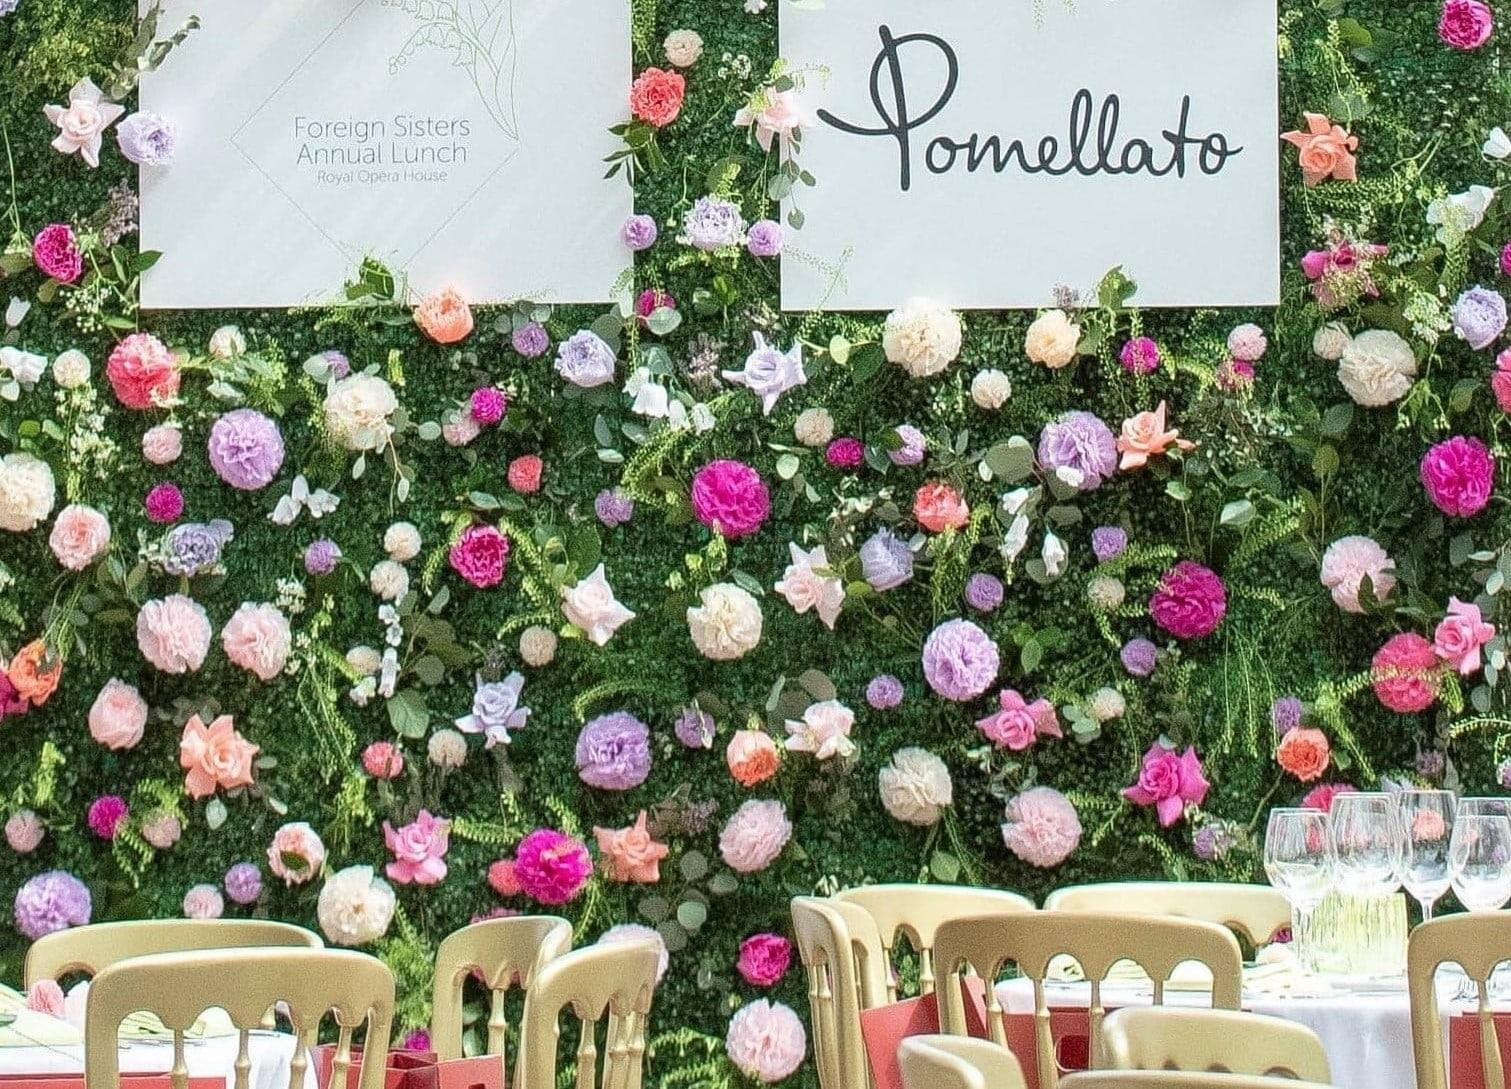 Wall of flowers with the Pomellato sign on it